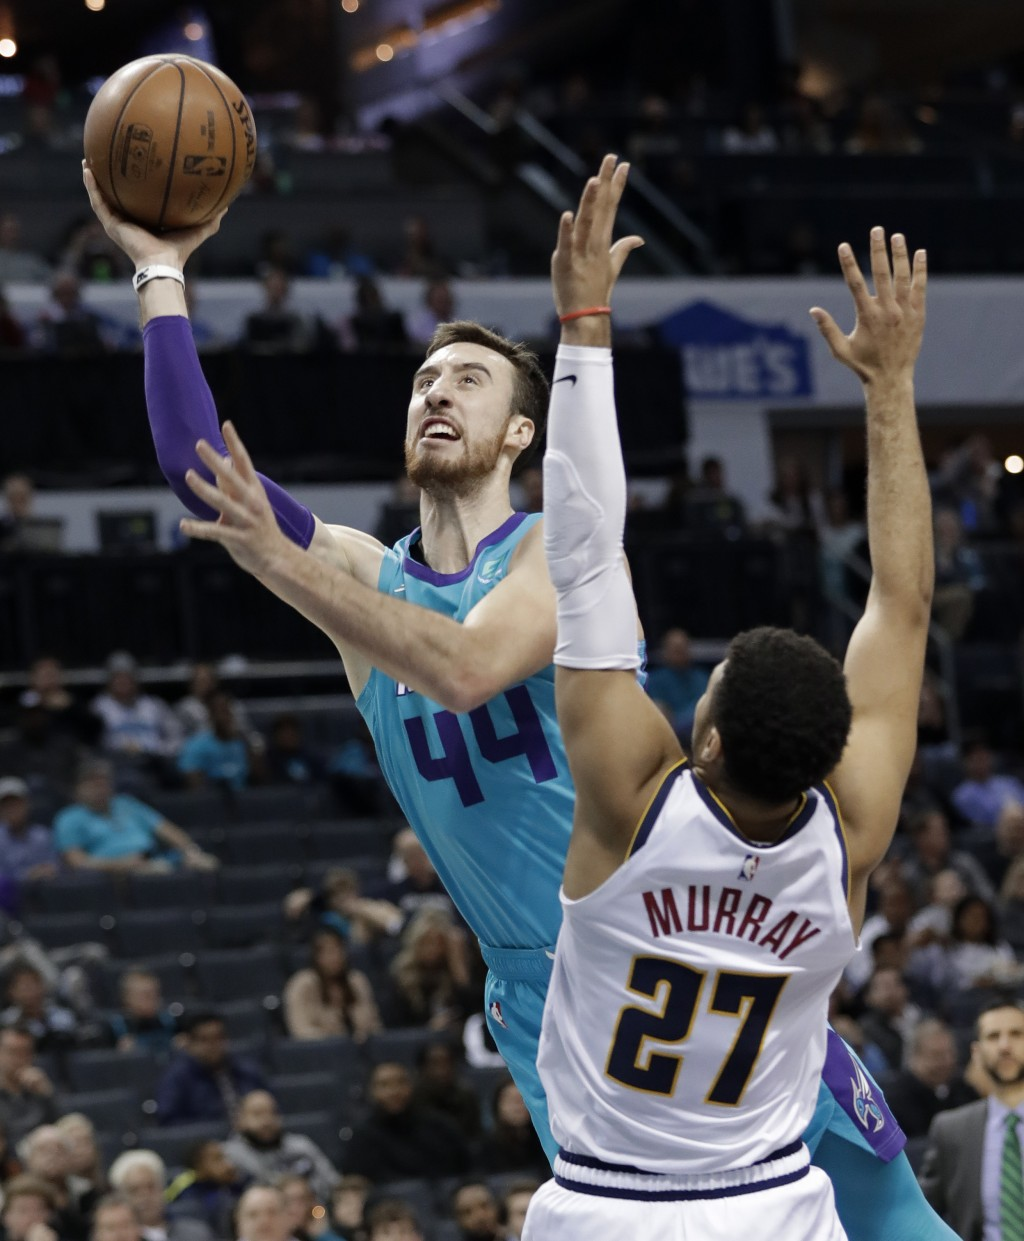 Charlotte Hornets' Frank Kaminsky (44) drives past Denver Nuggets' Jamal Murray (27) during the first half of an NBA basketball game in Charlotte, N.C